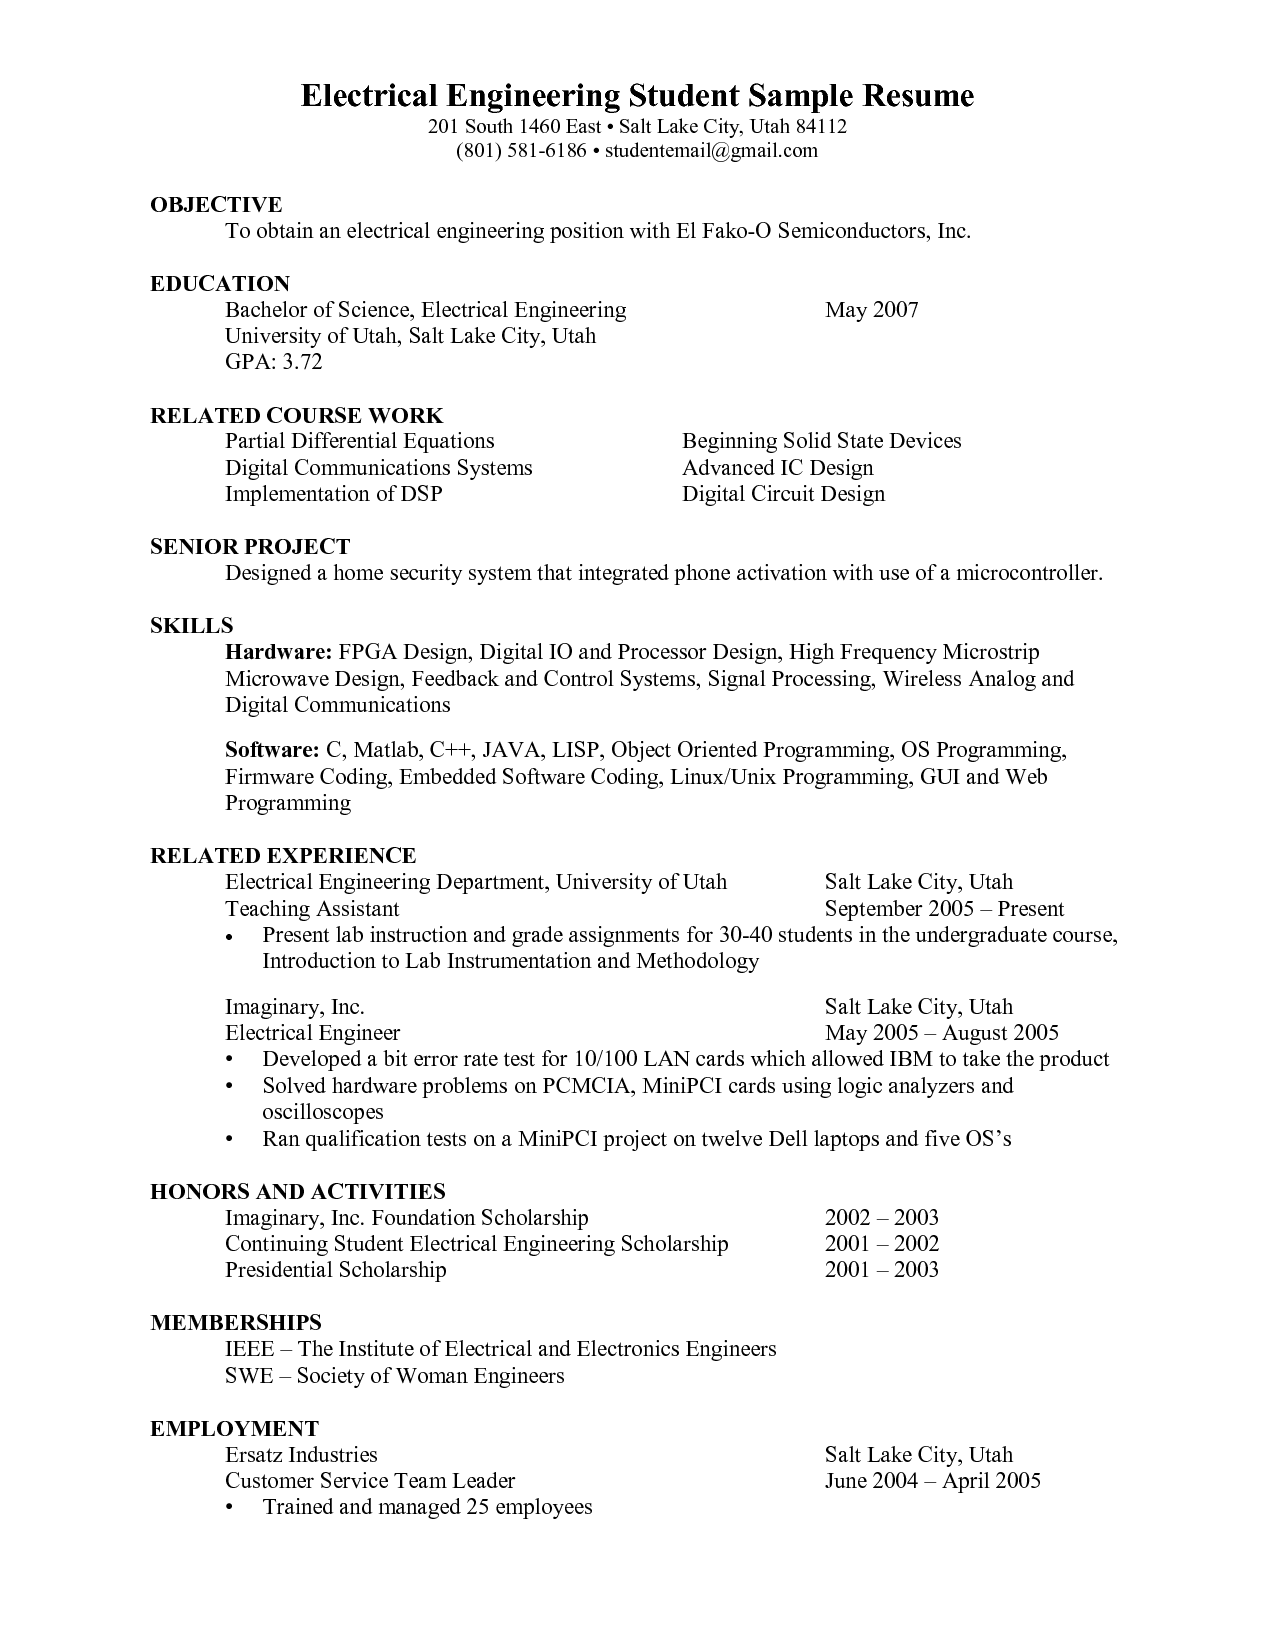 Pin By Resumejob On Resume Job Sample Resume Resume Resume Format